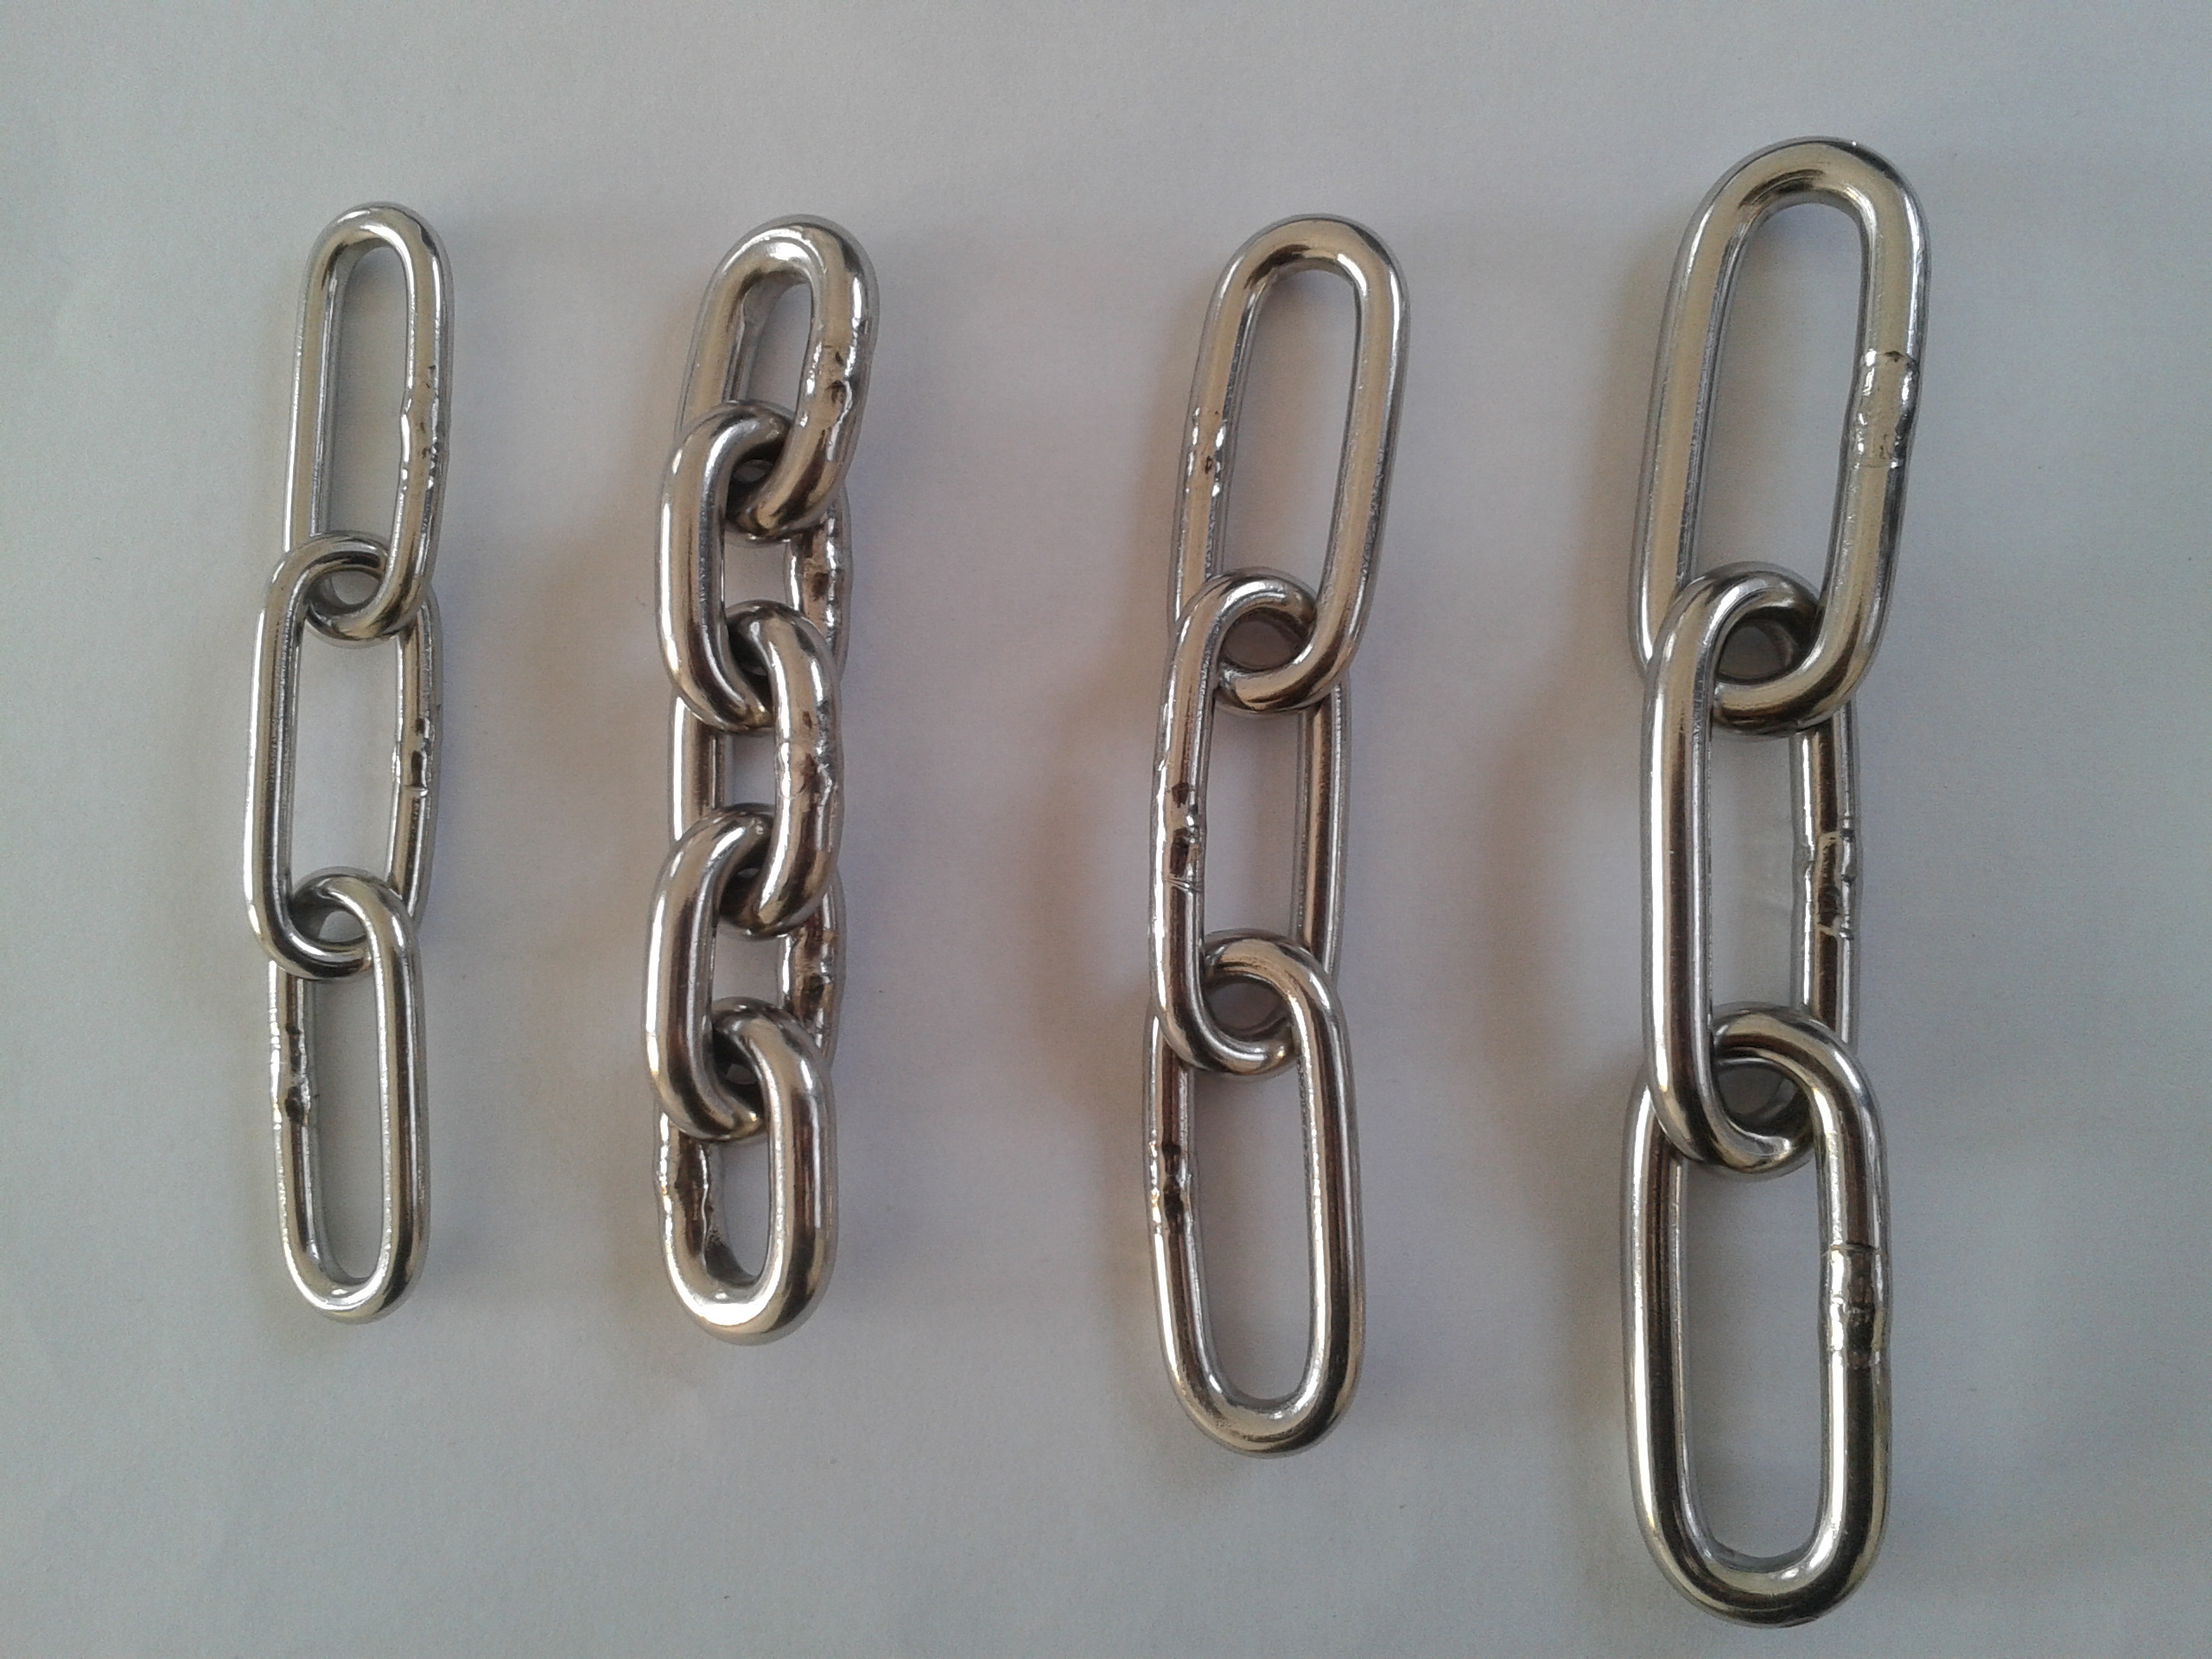 JAPAN Standard Stainless Steel Chain